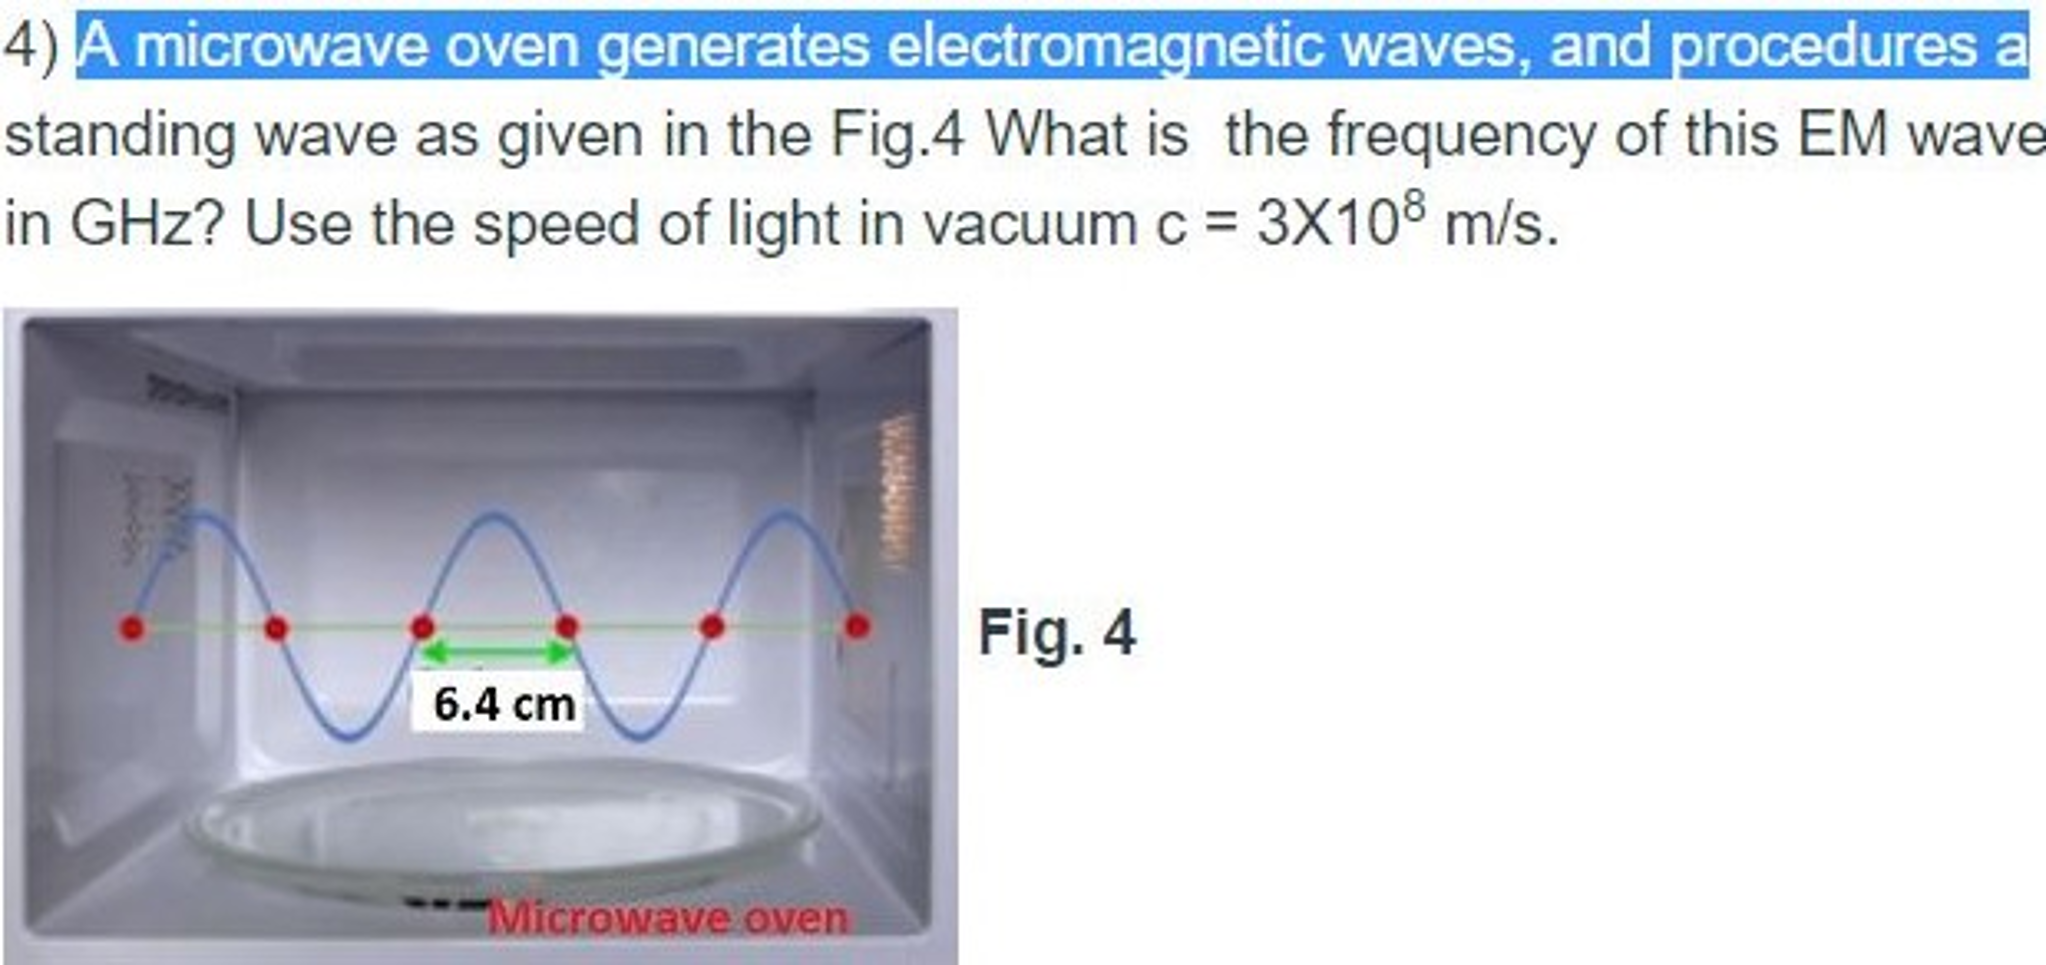 Solved: A Microwave Oven Generates Electromagnetic Waves ... on whirlpool microwave schematic diagram, microwave oven repair diagram, microwave oven installation, ge microwave schematic diagram, microwave oven troubleshooting, microwave oven electrical diagram, microwave power supply schematics, ge oven schematic diagram, oven wiring diagram, microwave oven wiring, microwave circuit diagram, how does a microwave work diagram, microwave parts diagram, scientific microwaves diagram, microwave oven components, samsung microwave schematic diagram, sharp microwave schematic diagram, microwave oven transformer diagram, microwave oven circuit, microwave oven interface,